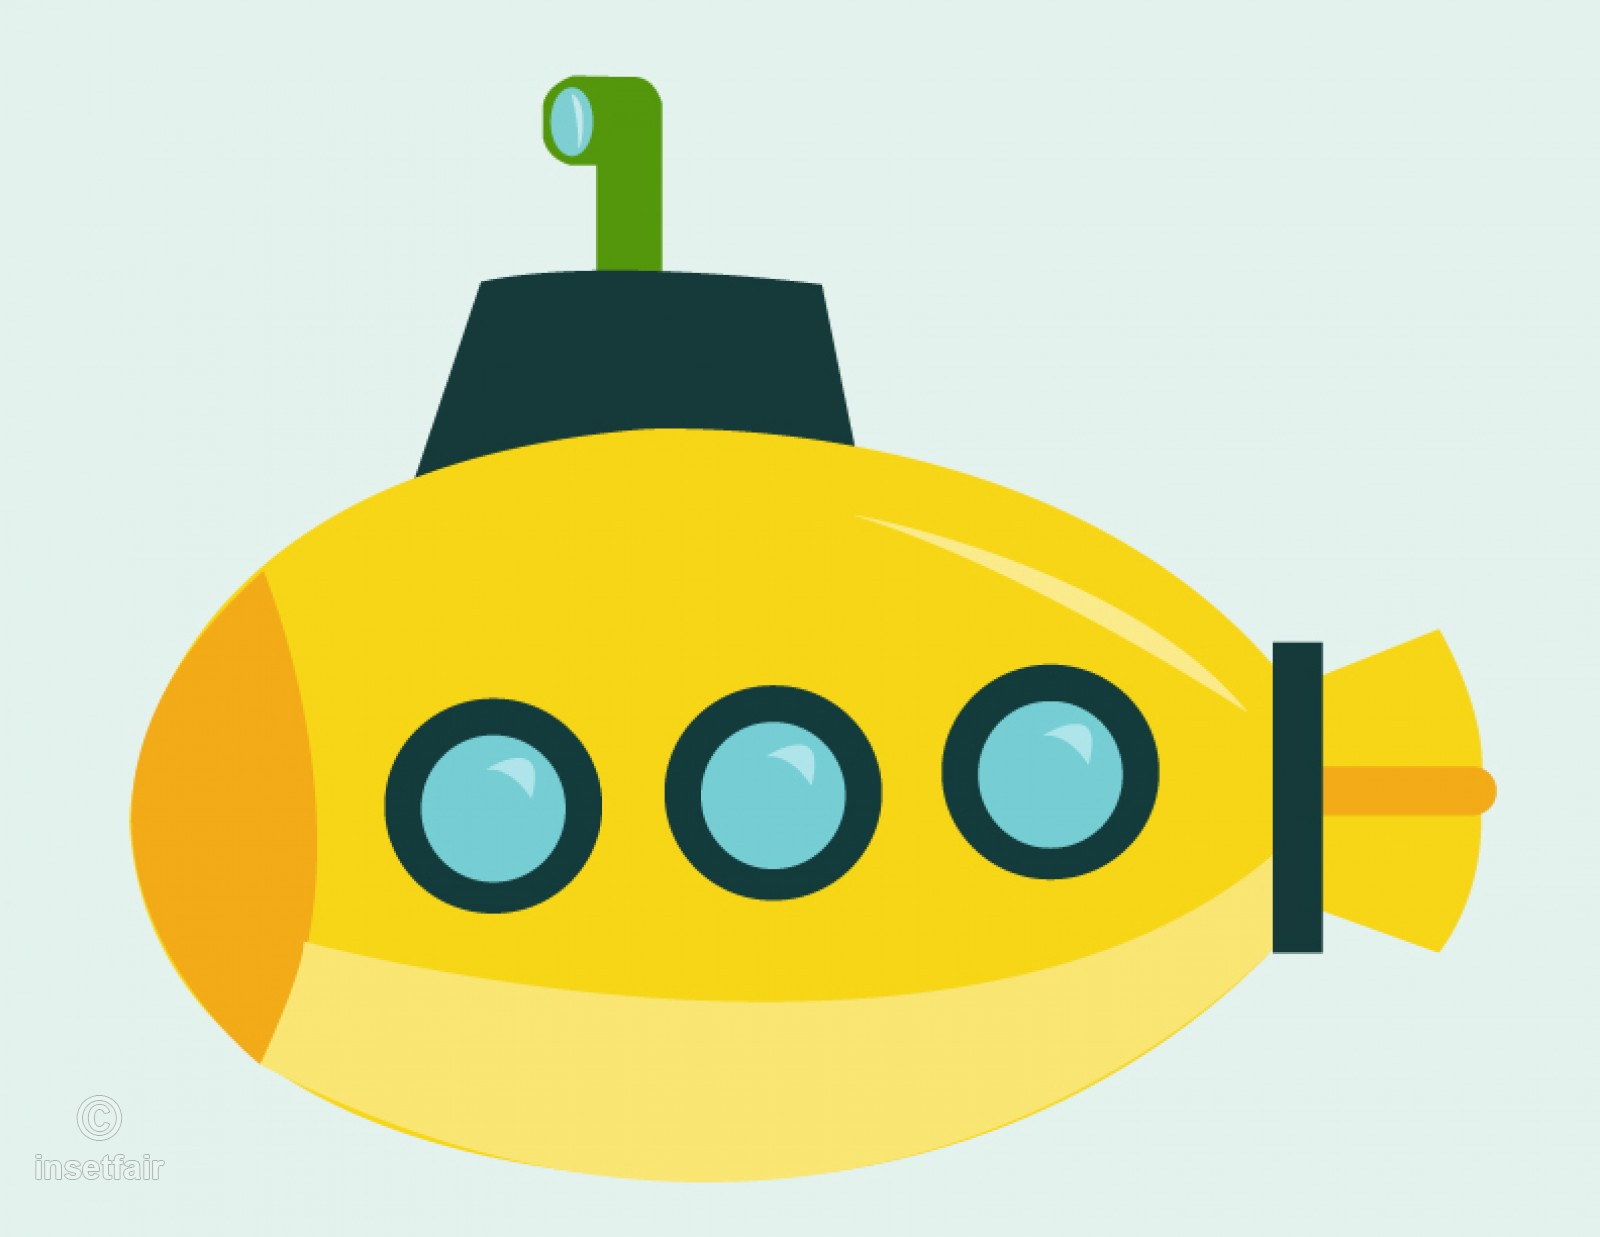 Submarine clipart png vector image free download.